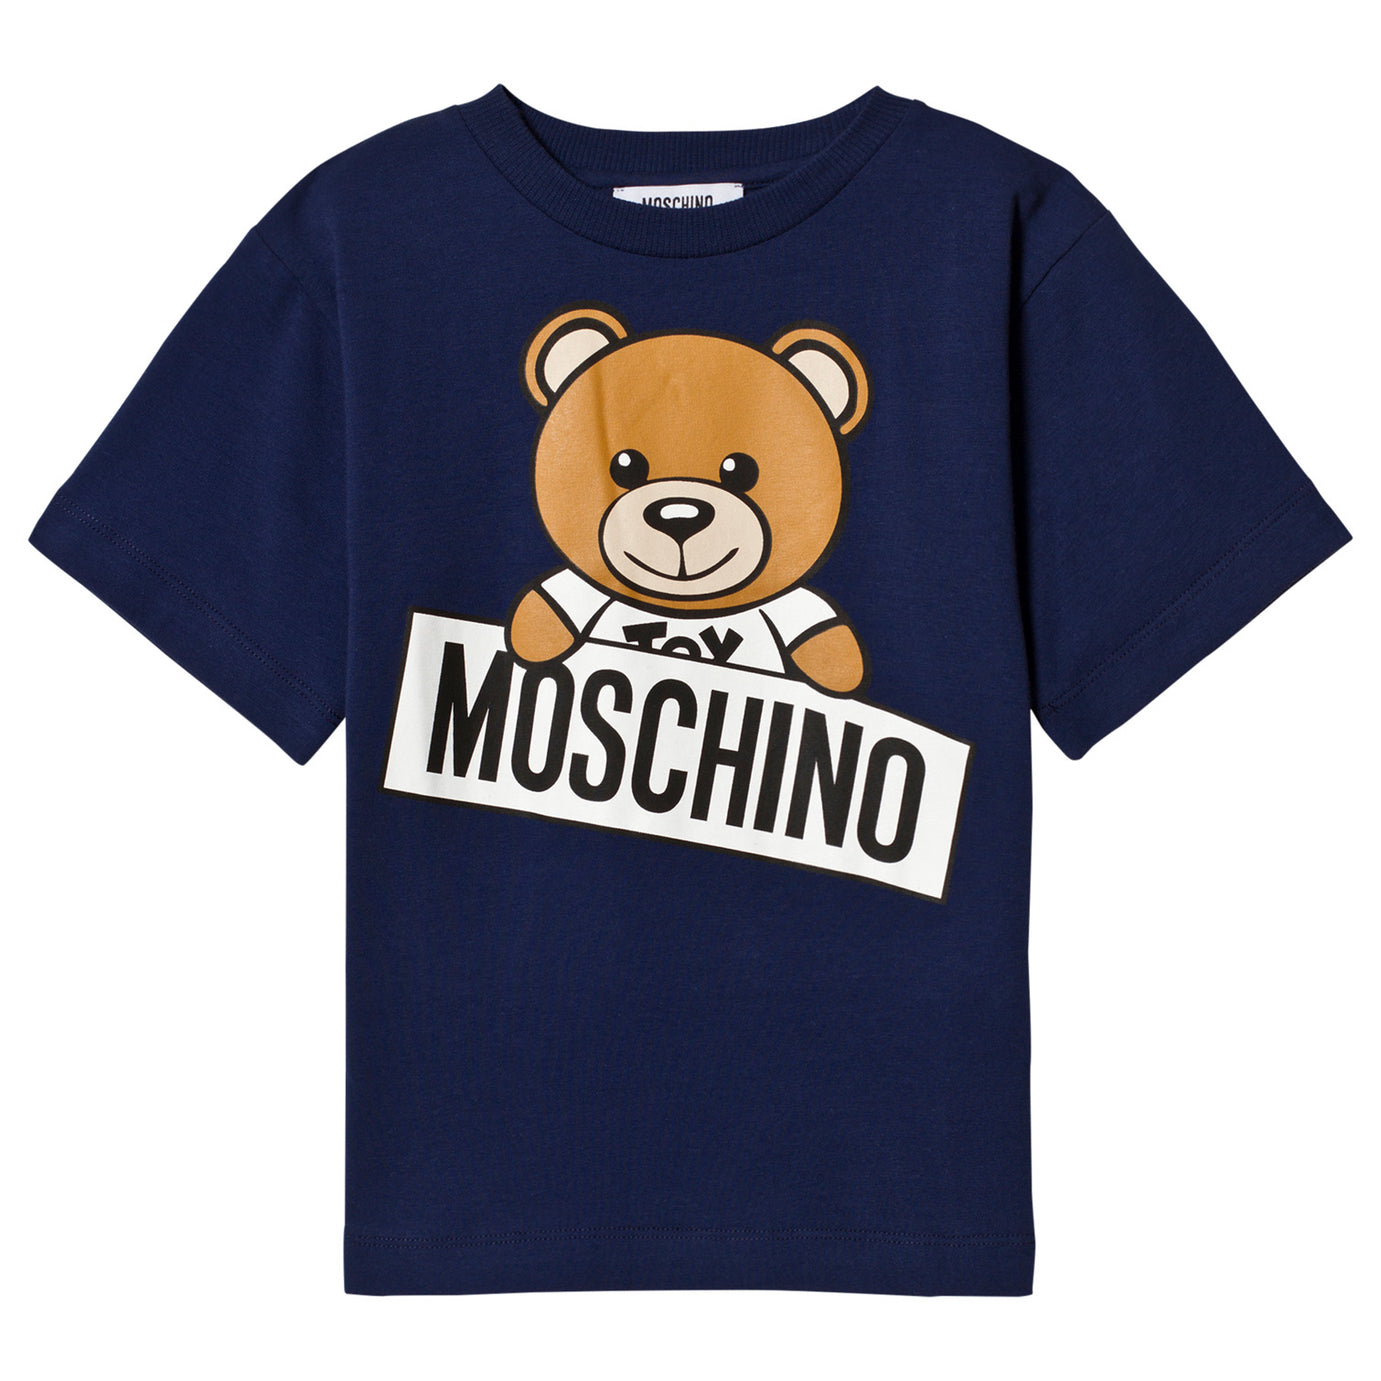 ee996d016 Moschino Navy Blue Teddybear Logo T-shirt (Unisex) – Petit New York